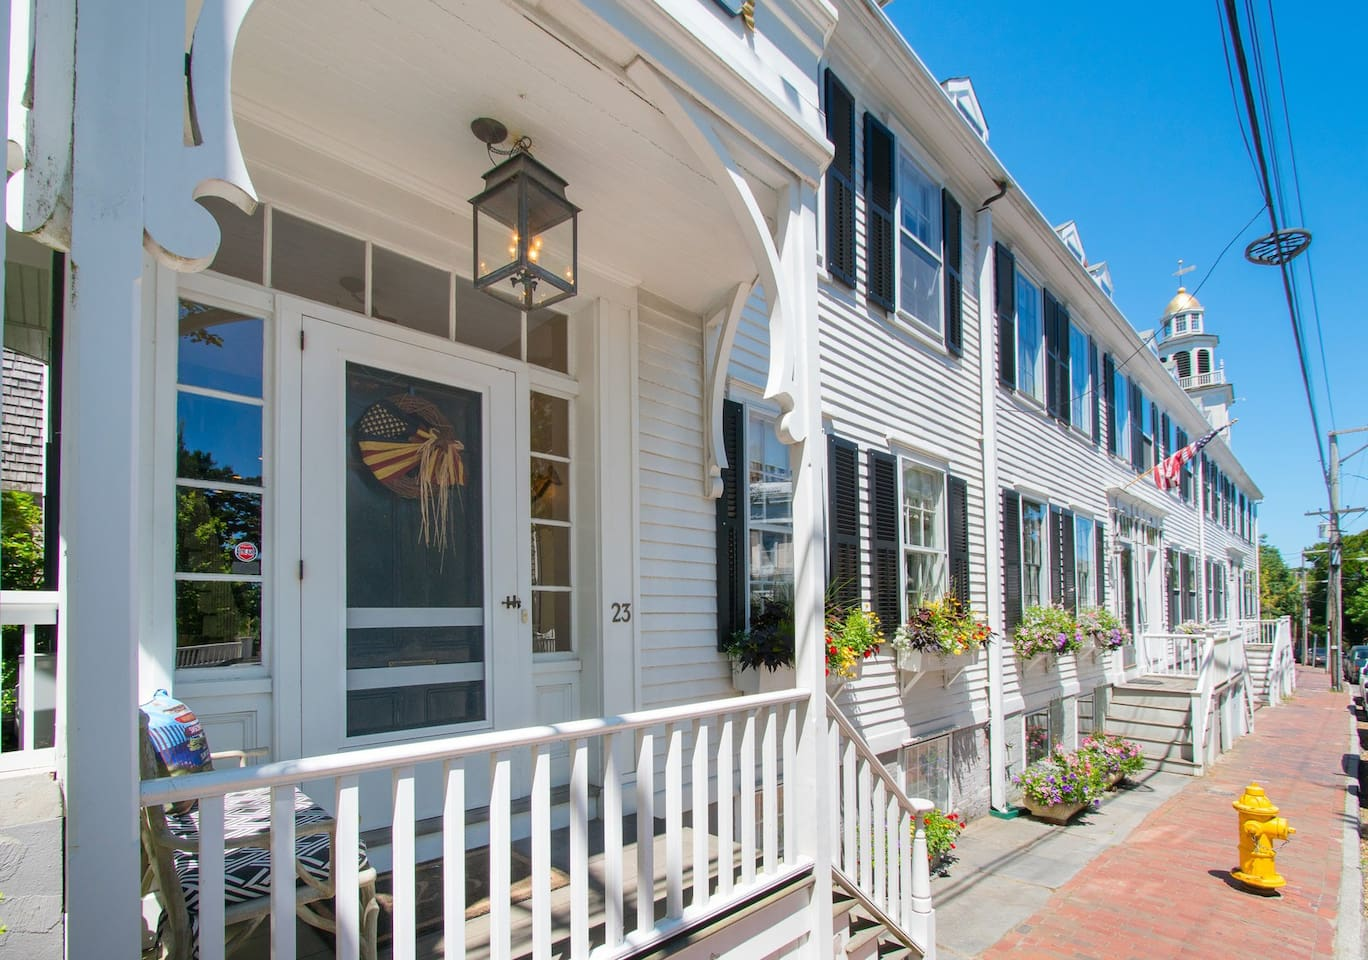 The Captain's House. Lucy's Opus is the premiere home in the historical Folger's Block. Serving to Captain Folger it has been lovingly & meticulously preserved and updated to 2019.  A true gem that offers a Nantucket experience like none other.